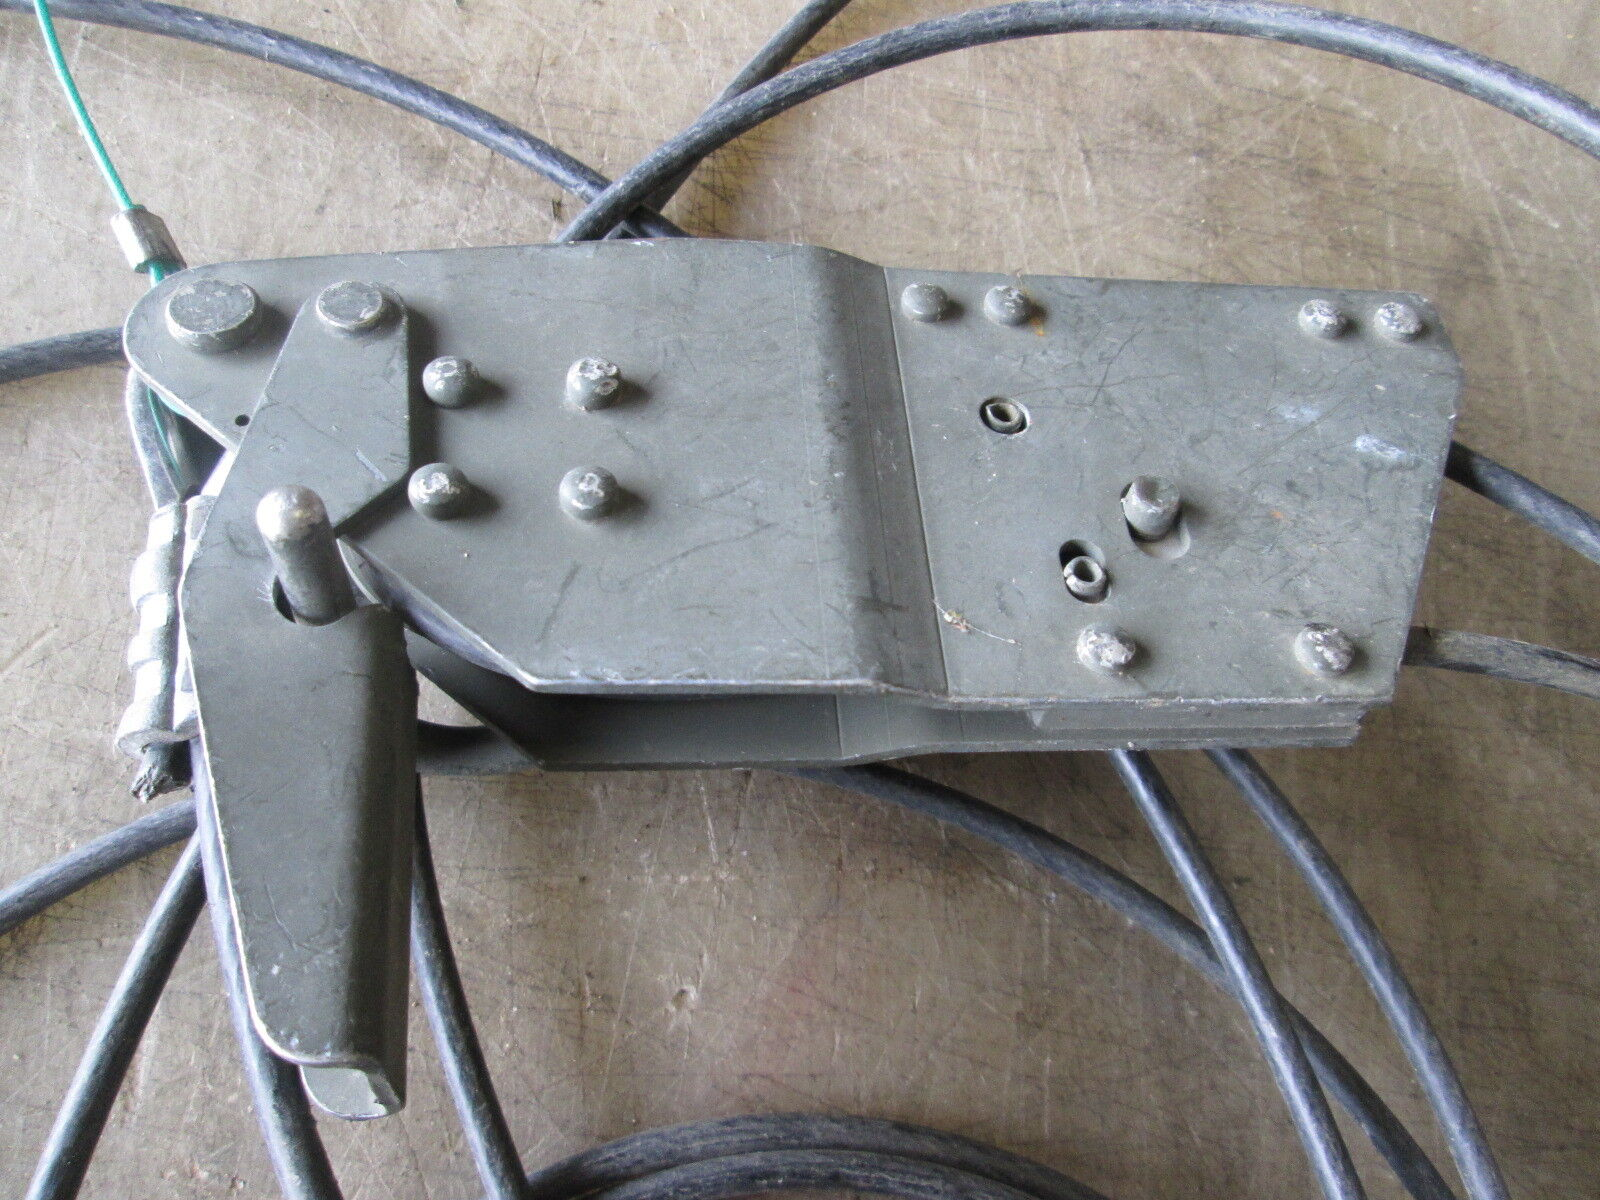 USED GUY WIRE Cable w/Clamp, for Military Antenna Mast - $29.00 ...